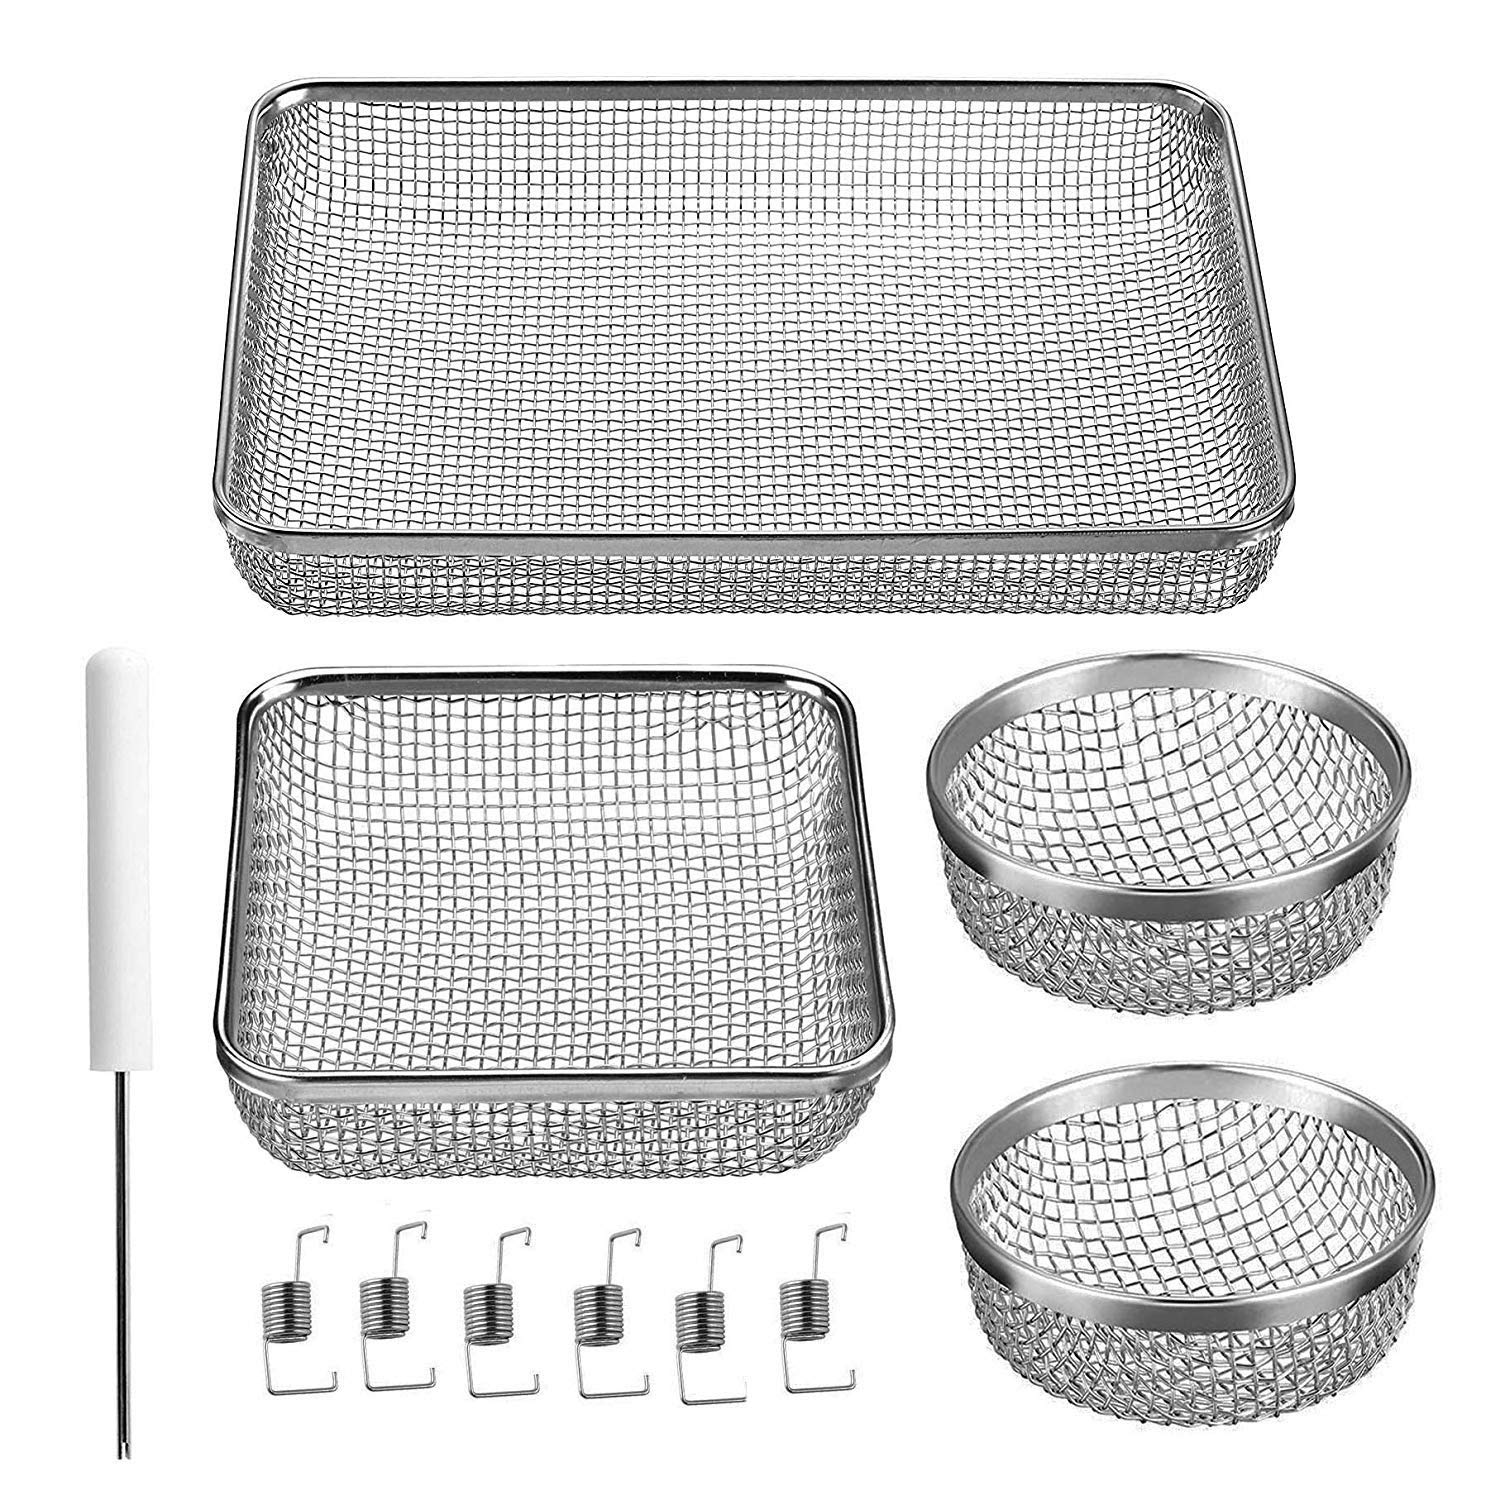 RV Furnace Screen for RV Water Heater Vent Cover, RV Bugs Screen,Flying Insect Screen,Stainless Steel Mesh with Installation Tool by Wadoy